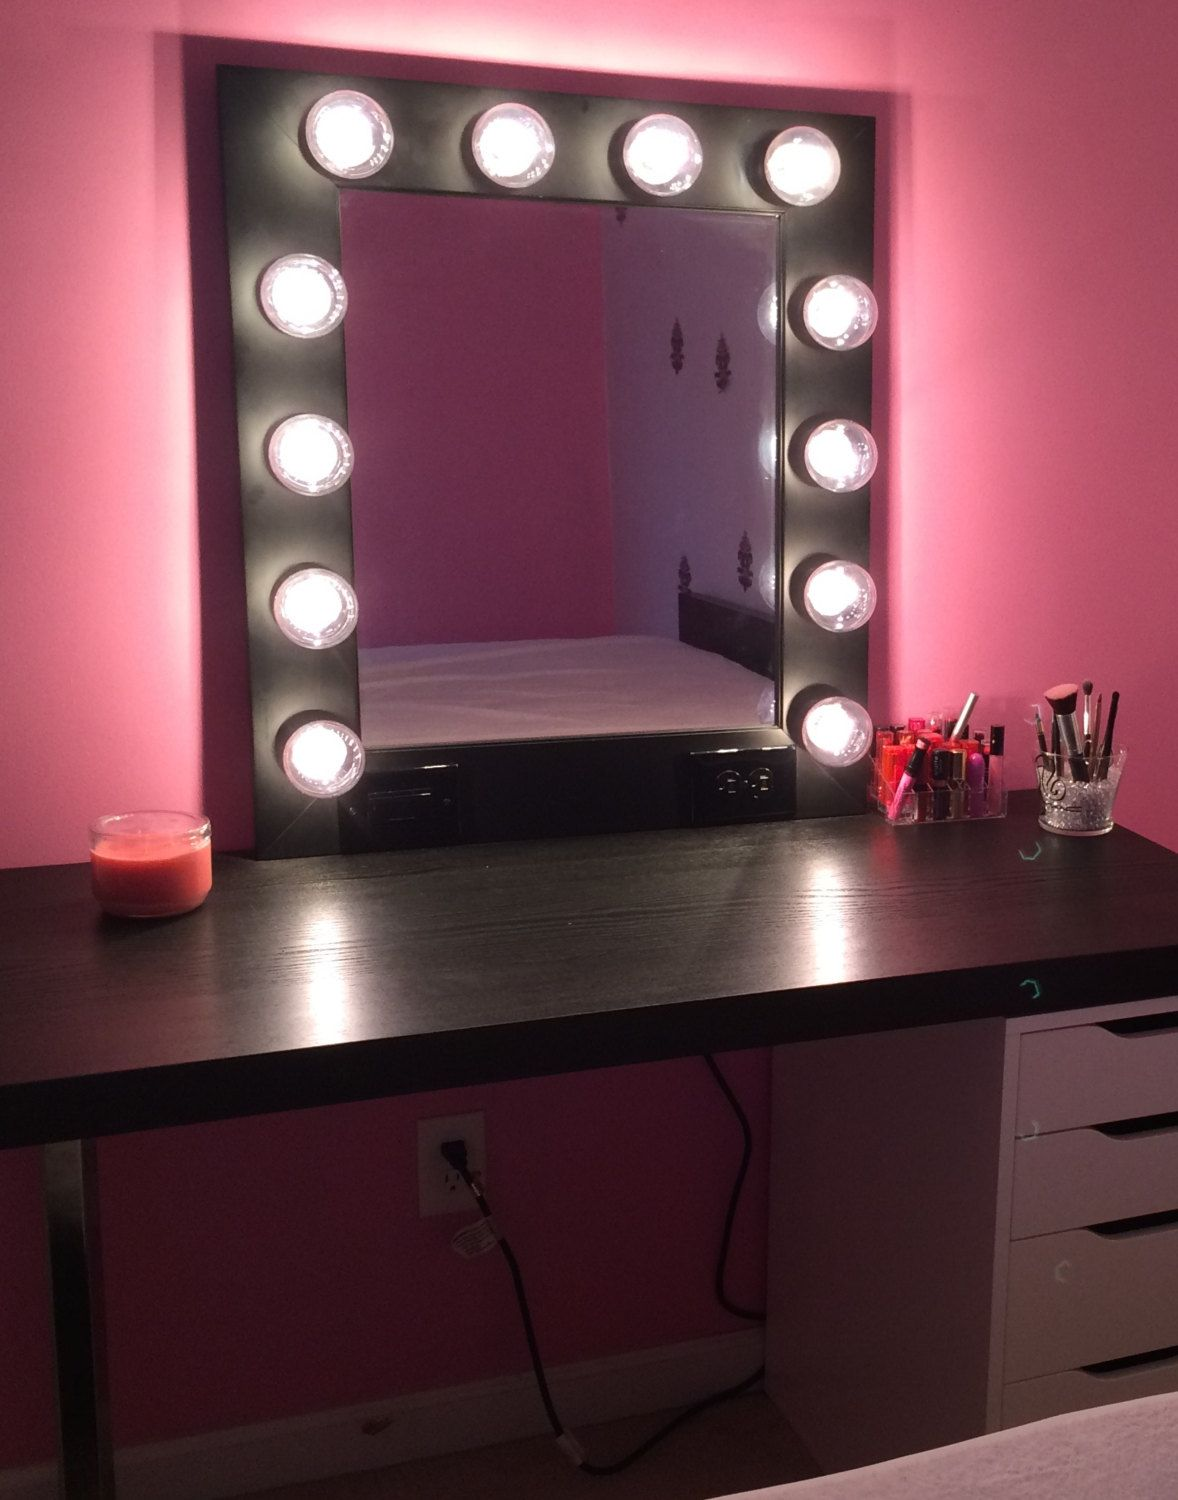 vanity with lights on mirror. Vanity Makeup Mirror with Lights  Available Built in Digital LED Dimmer Limited Time SALE